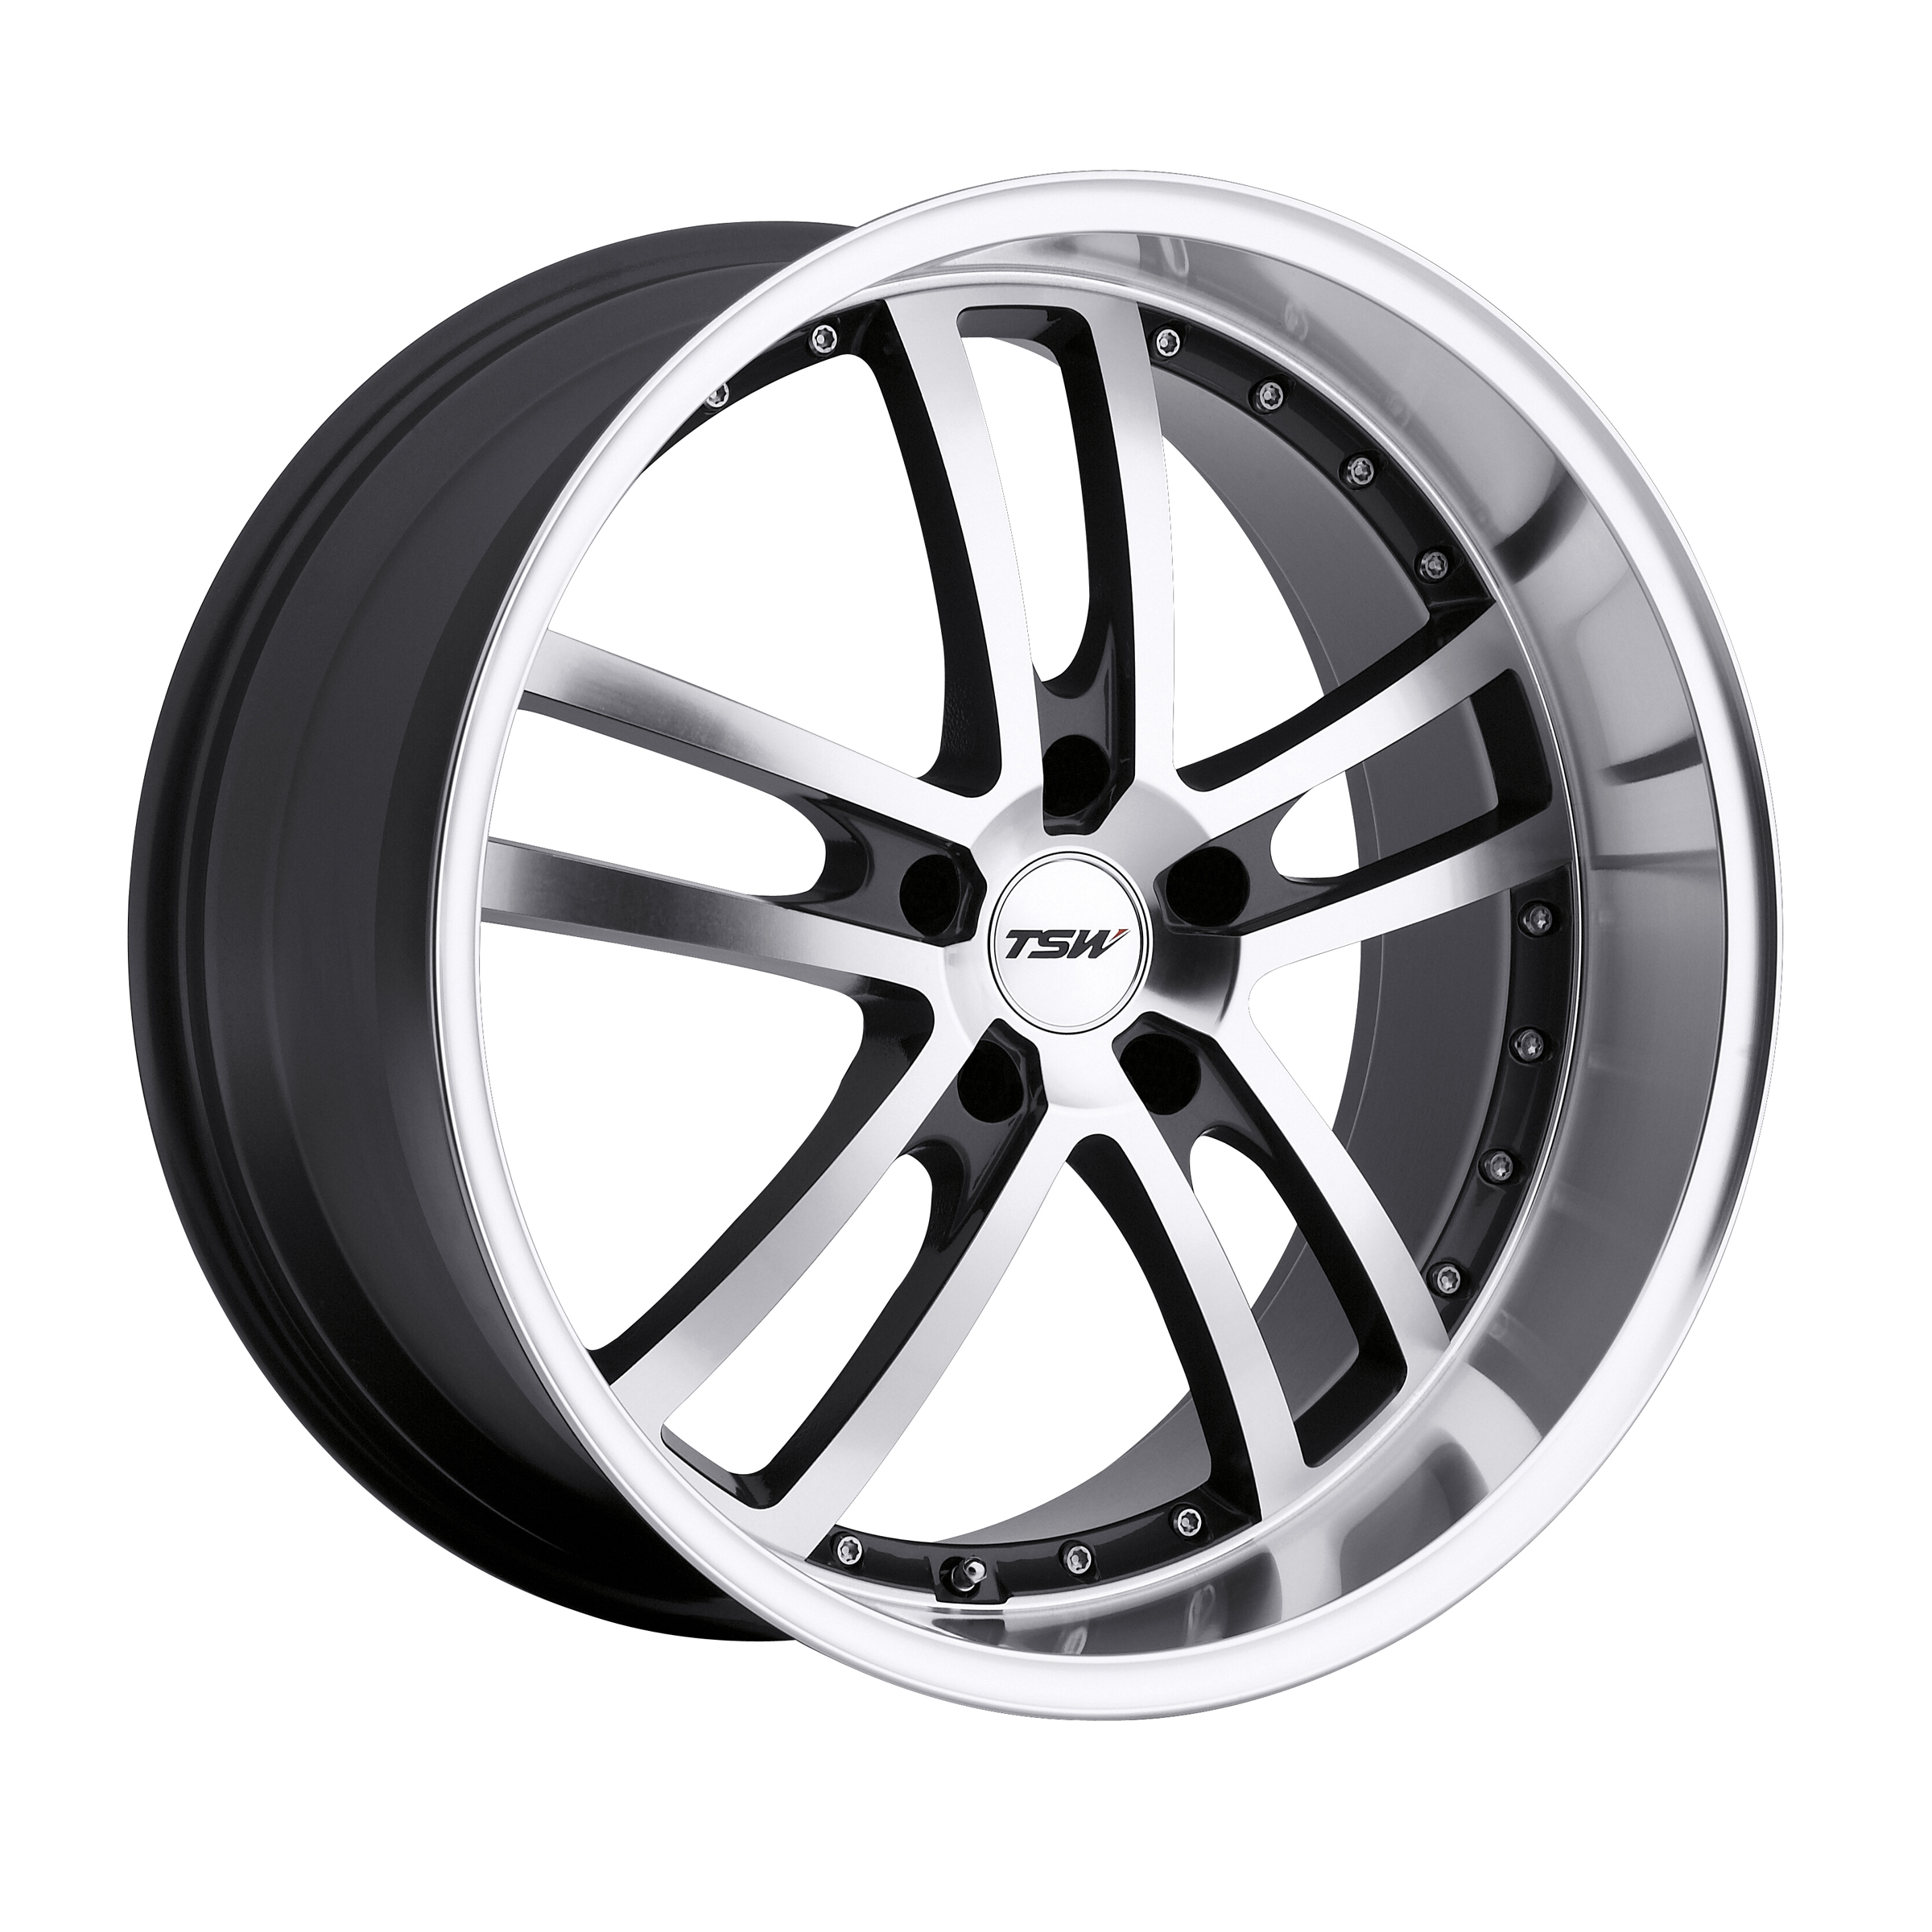 CADWELL  WHEELS AND RIMS PACKAGES